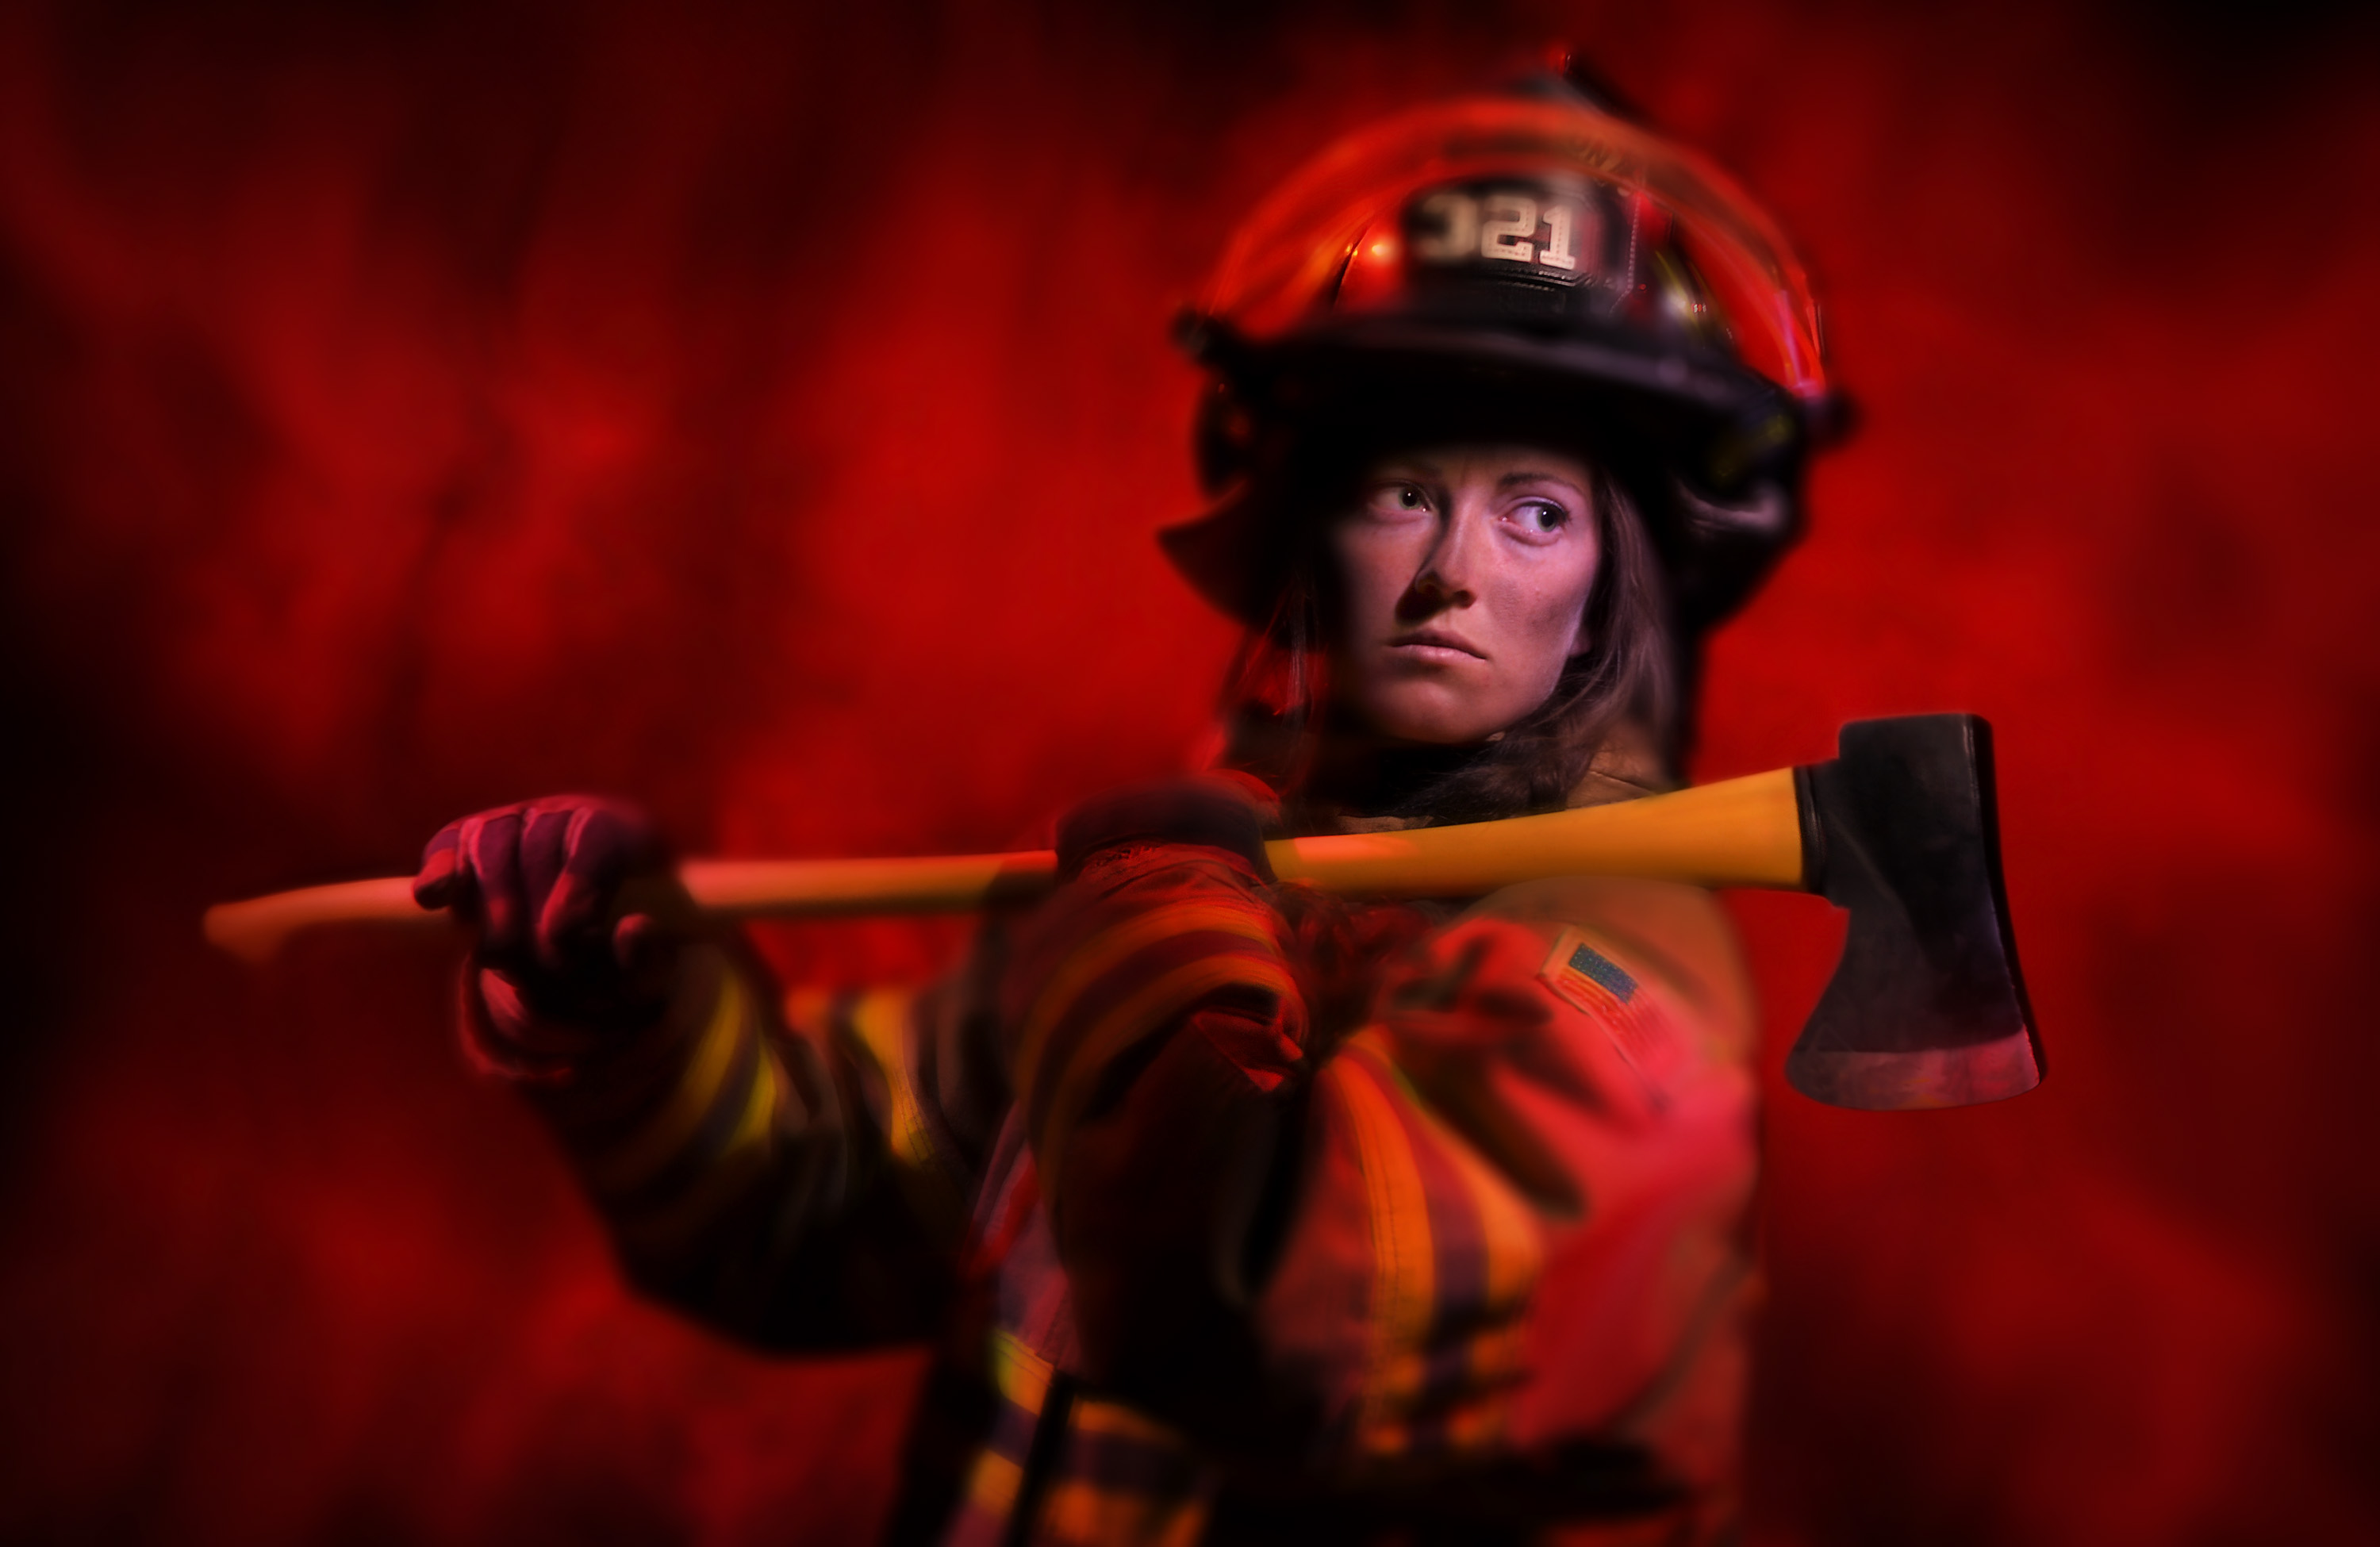 3-Fire-Fighter